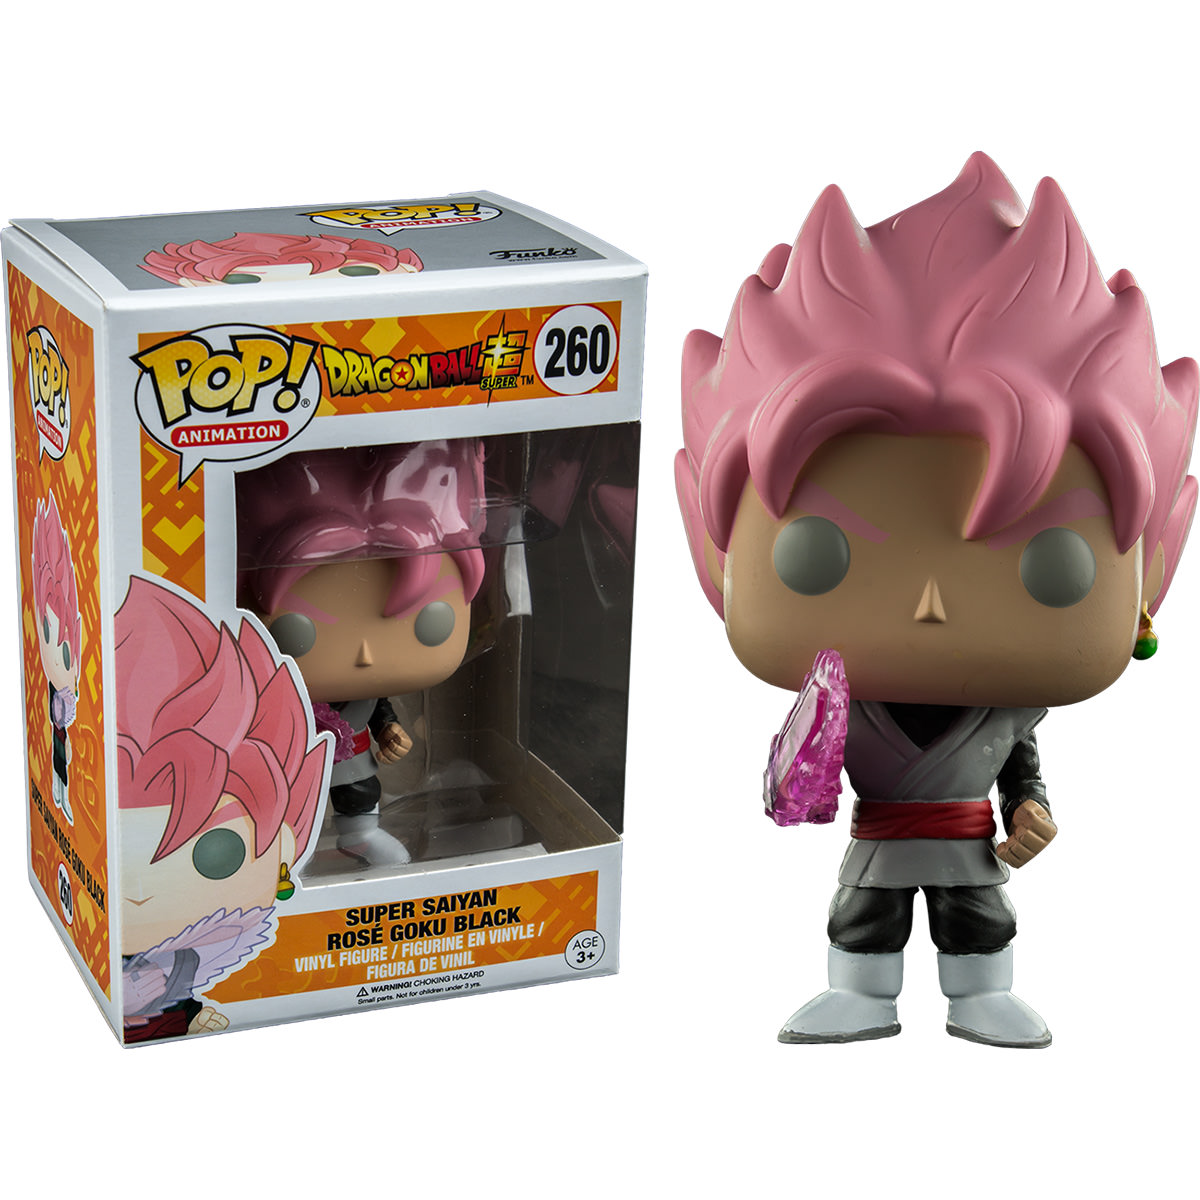 Funko Dragonball Z Super Saiyan Rose Goku Black Pop